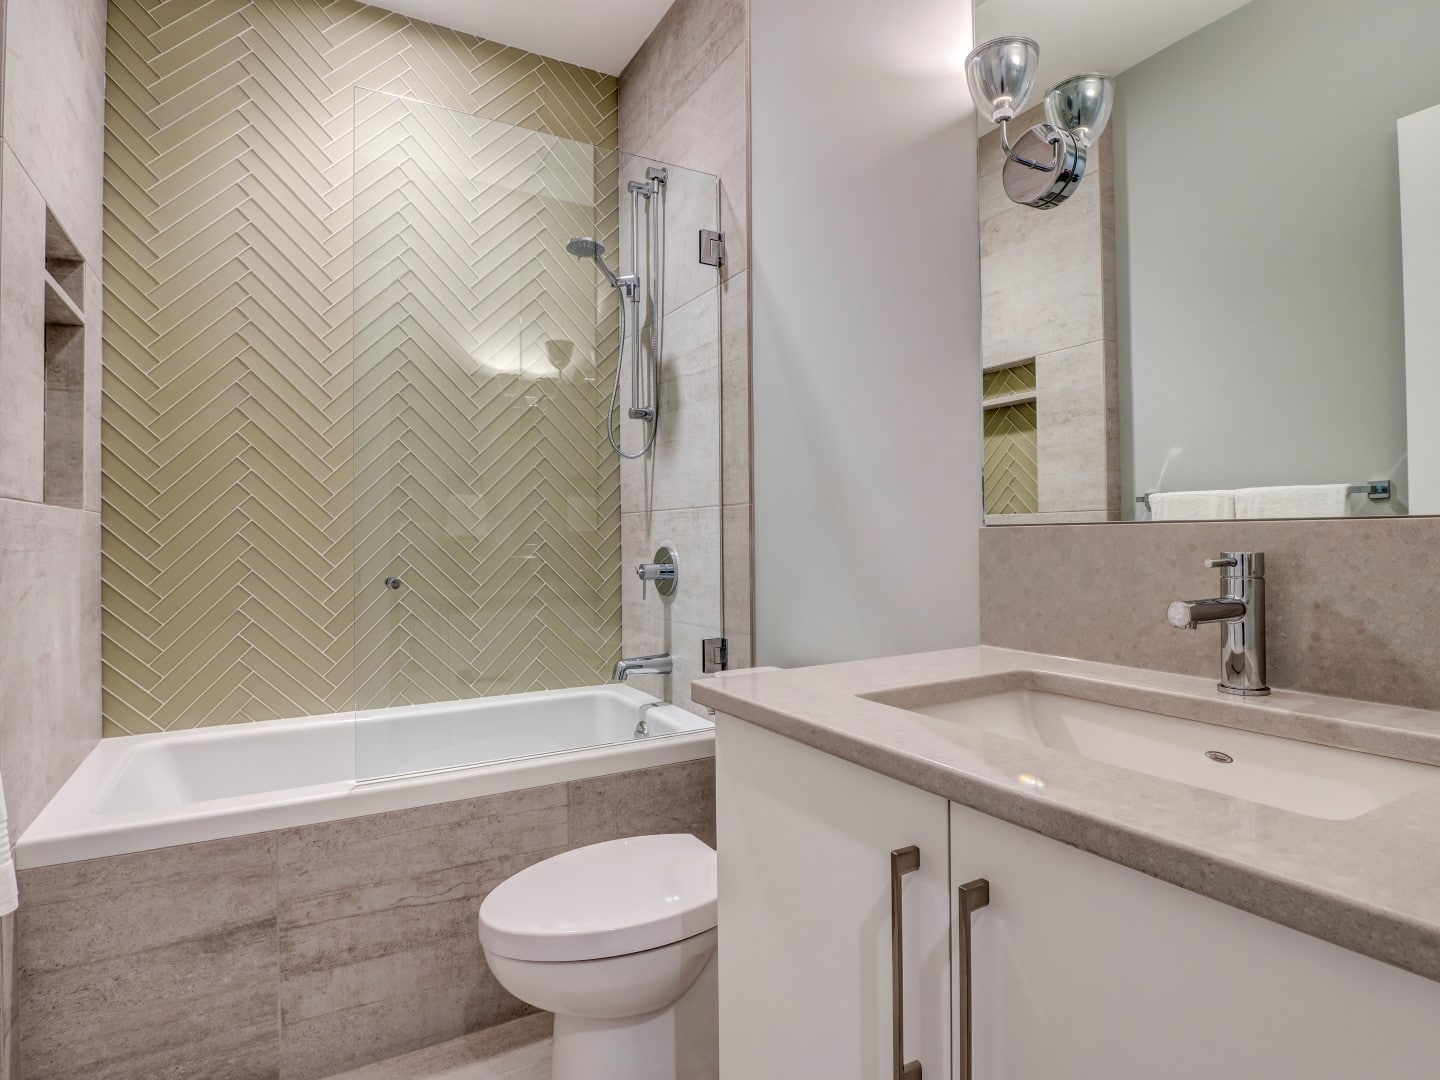 Wilden - Rocky Point - Show Home, Bathroom (18)